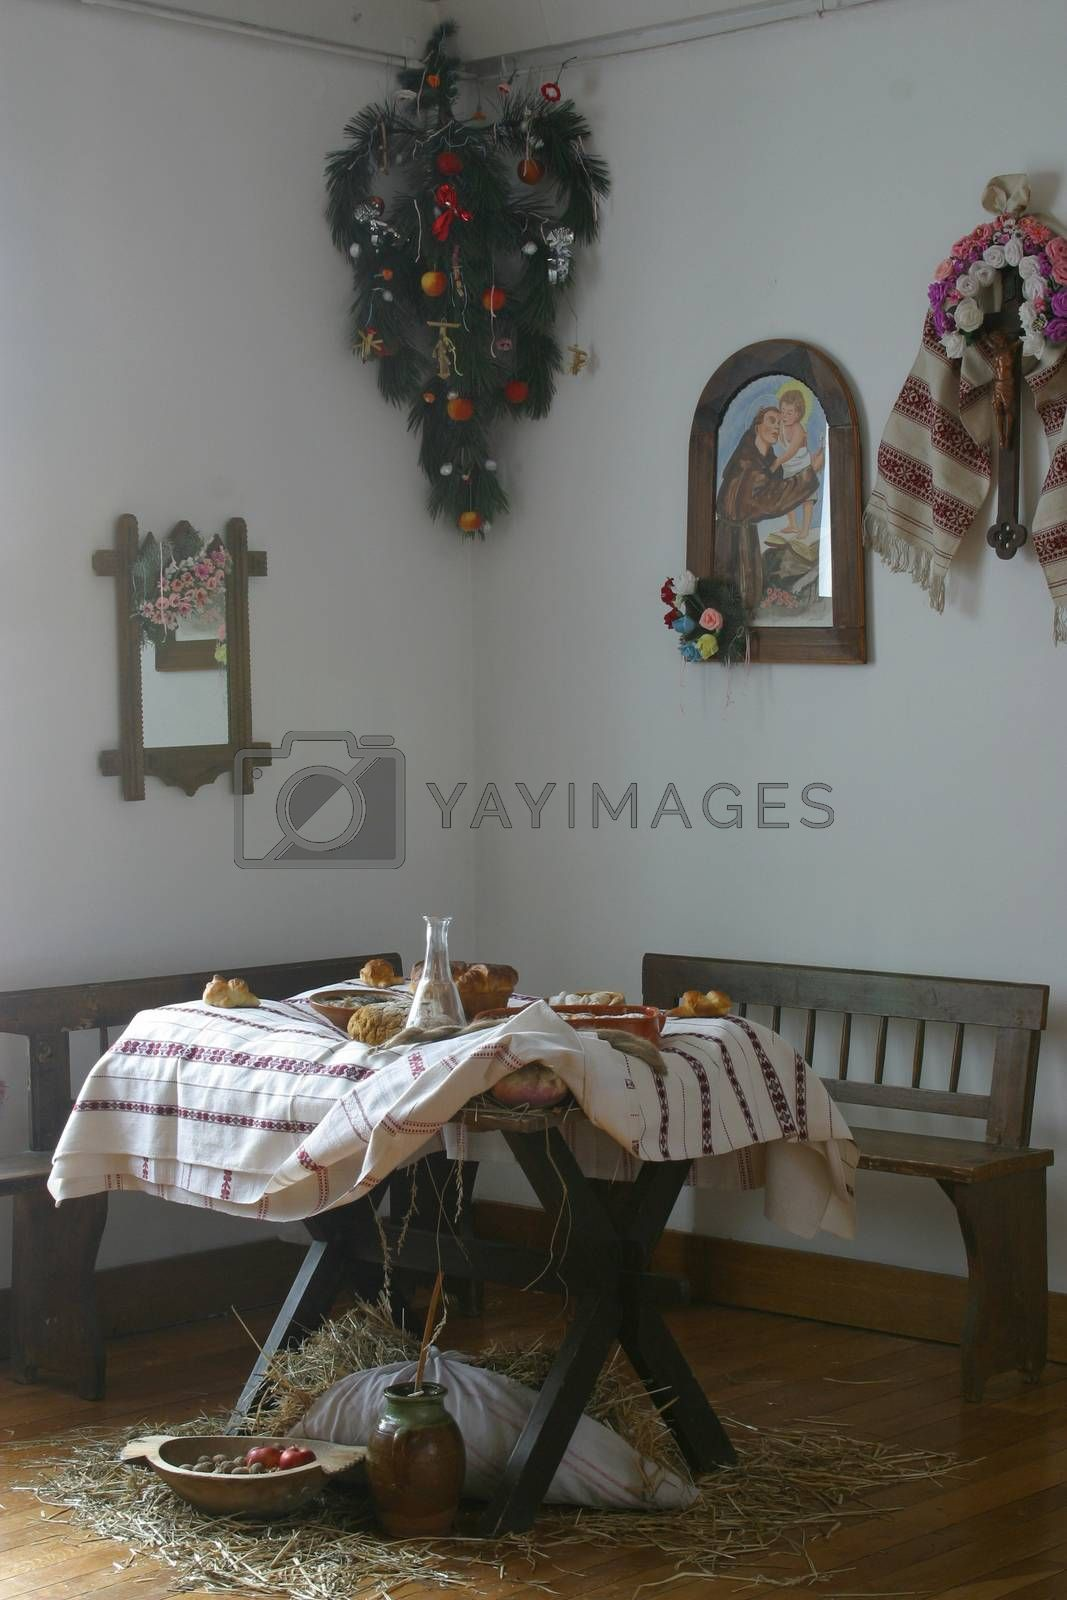 A nice dining table set for Christmas dinner in old countryhouse, central Europe -Croatia